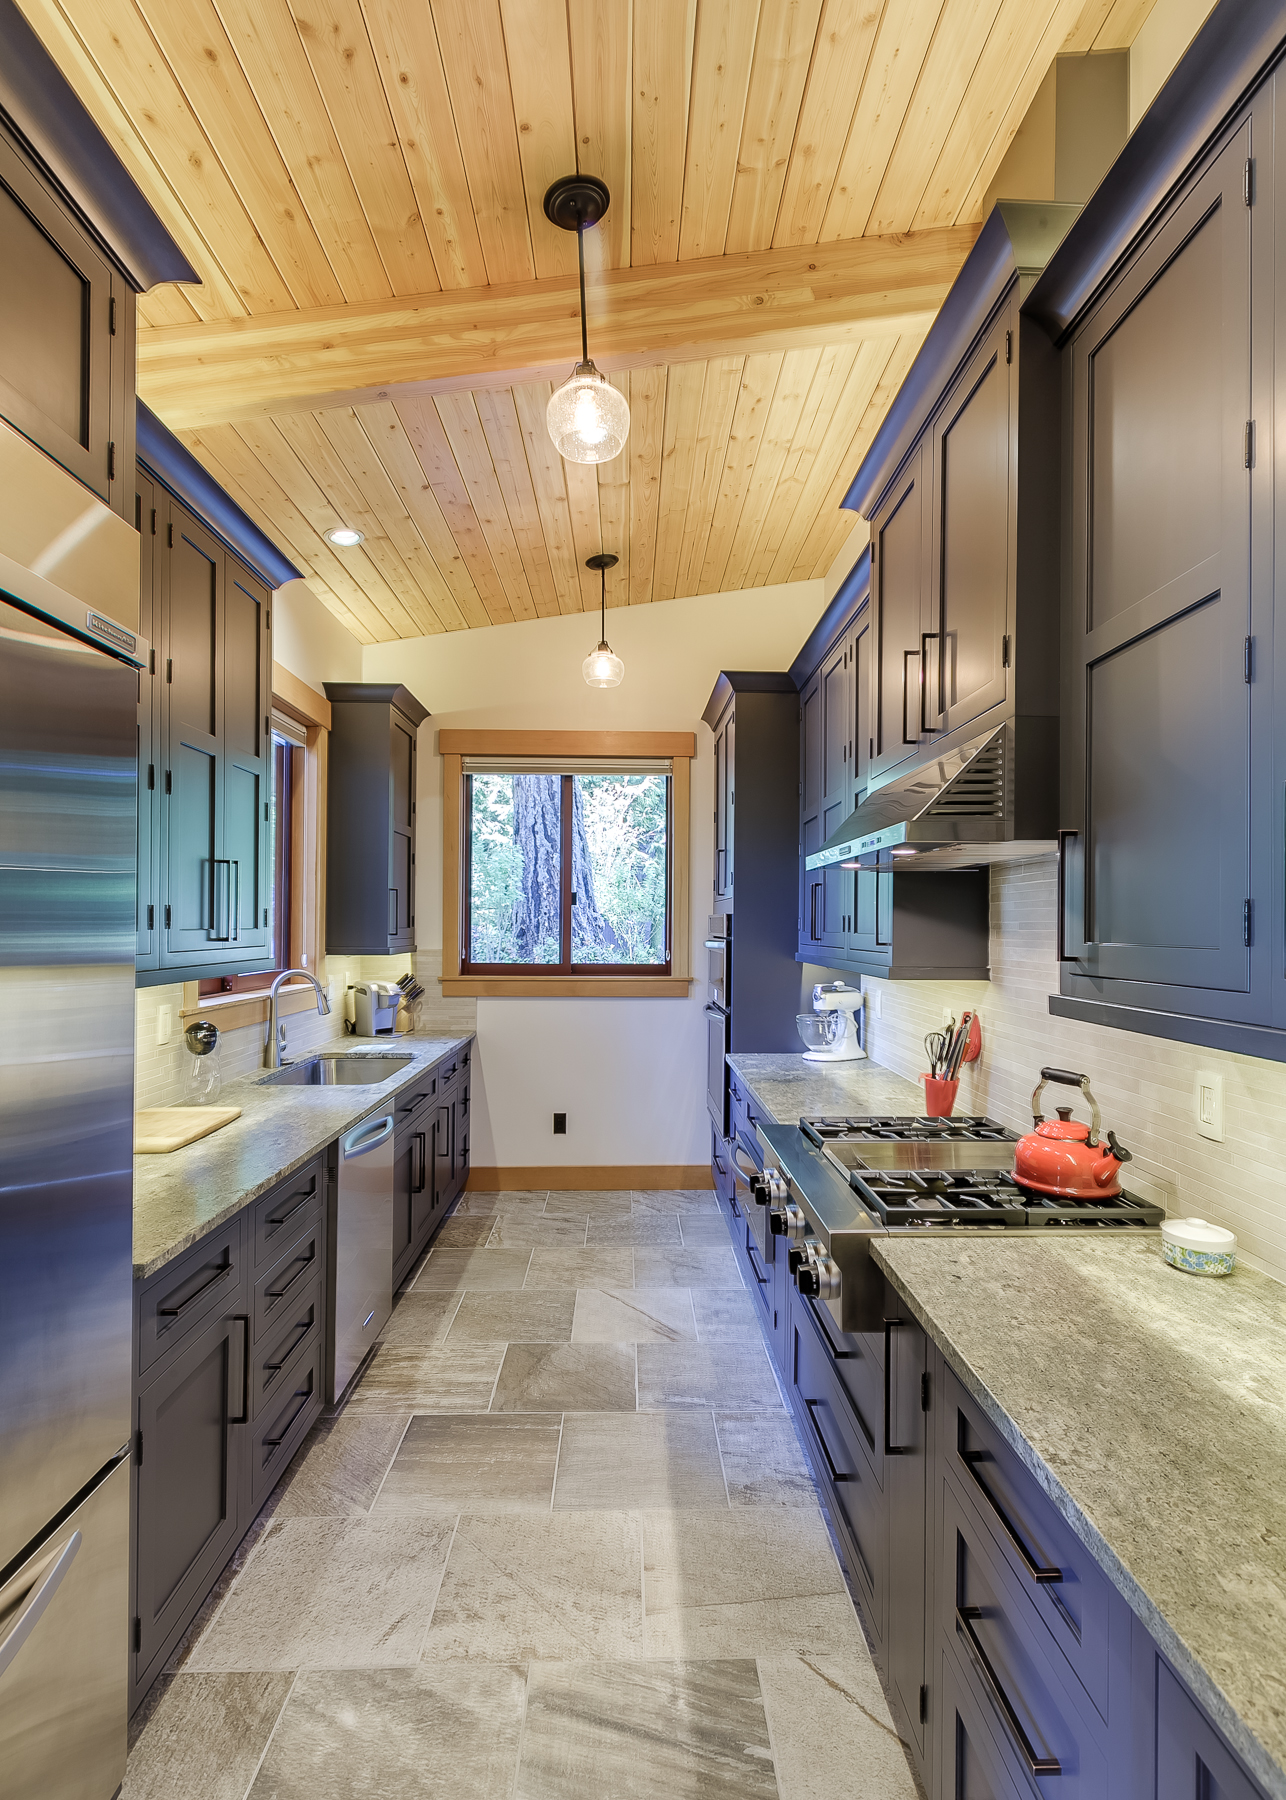 Narrow Kitchen works- the up lighting above the upper cabinets helps lift the lid of the ceiling to counter-act the dark cabinets.